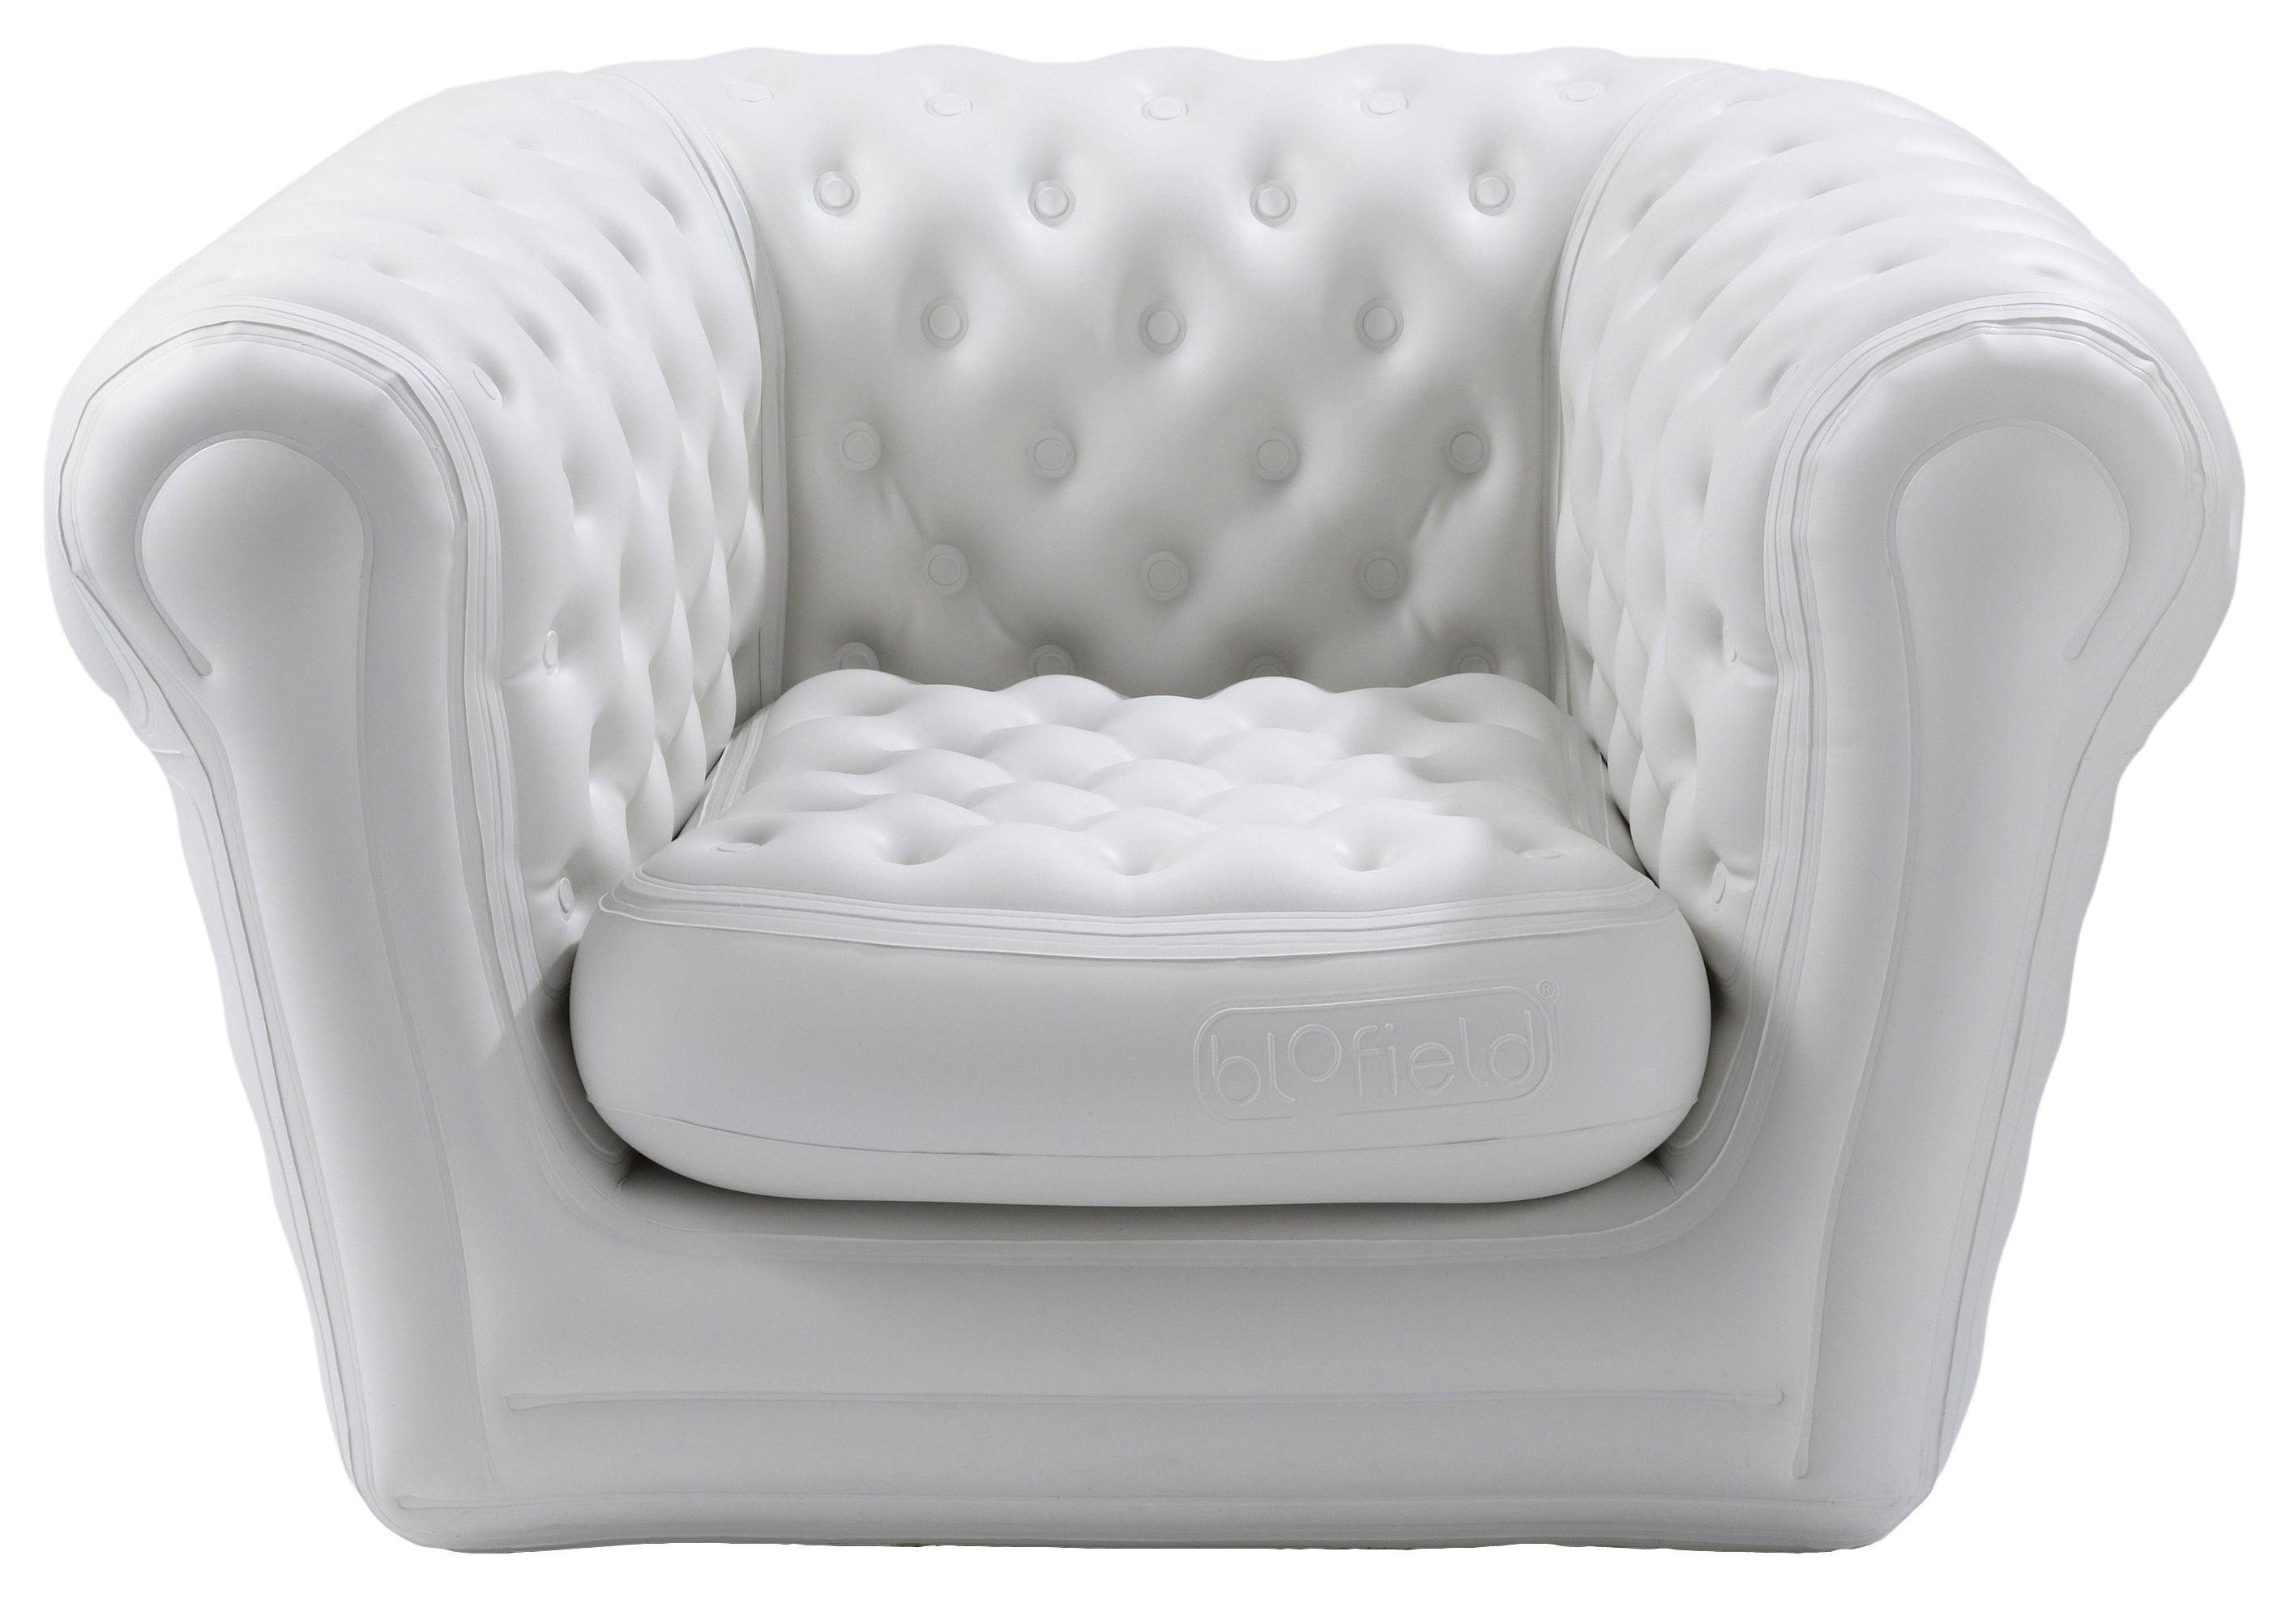 fauteuil gonflable big blo 1 blanc blofield. Black Bedroom Furniture Sets. Home Design Ideas